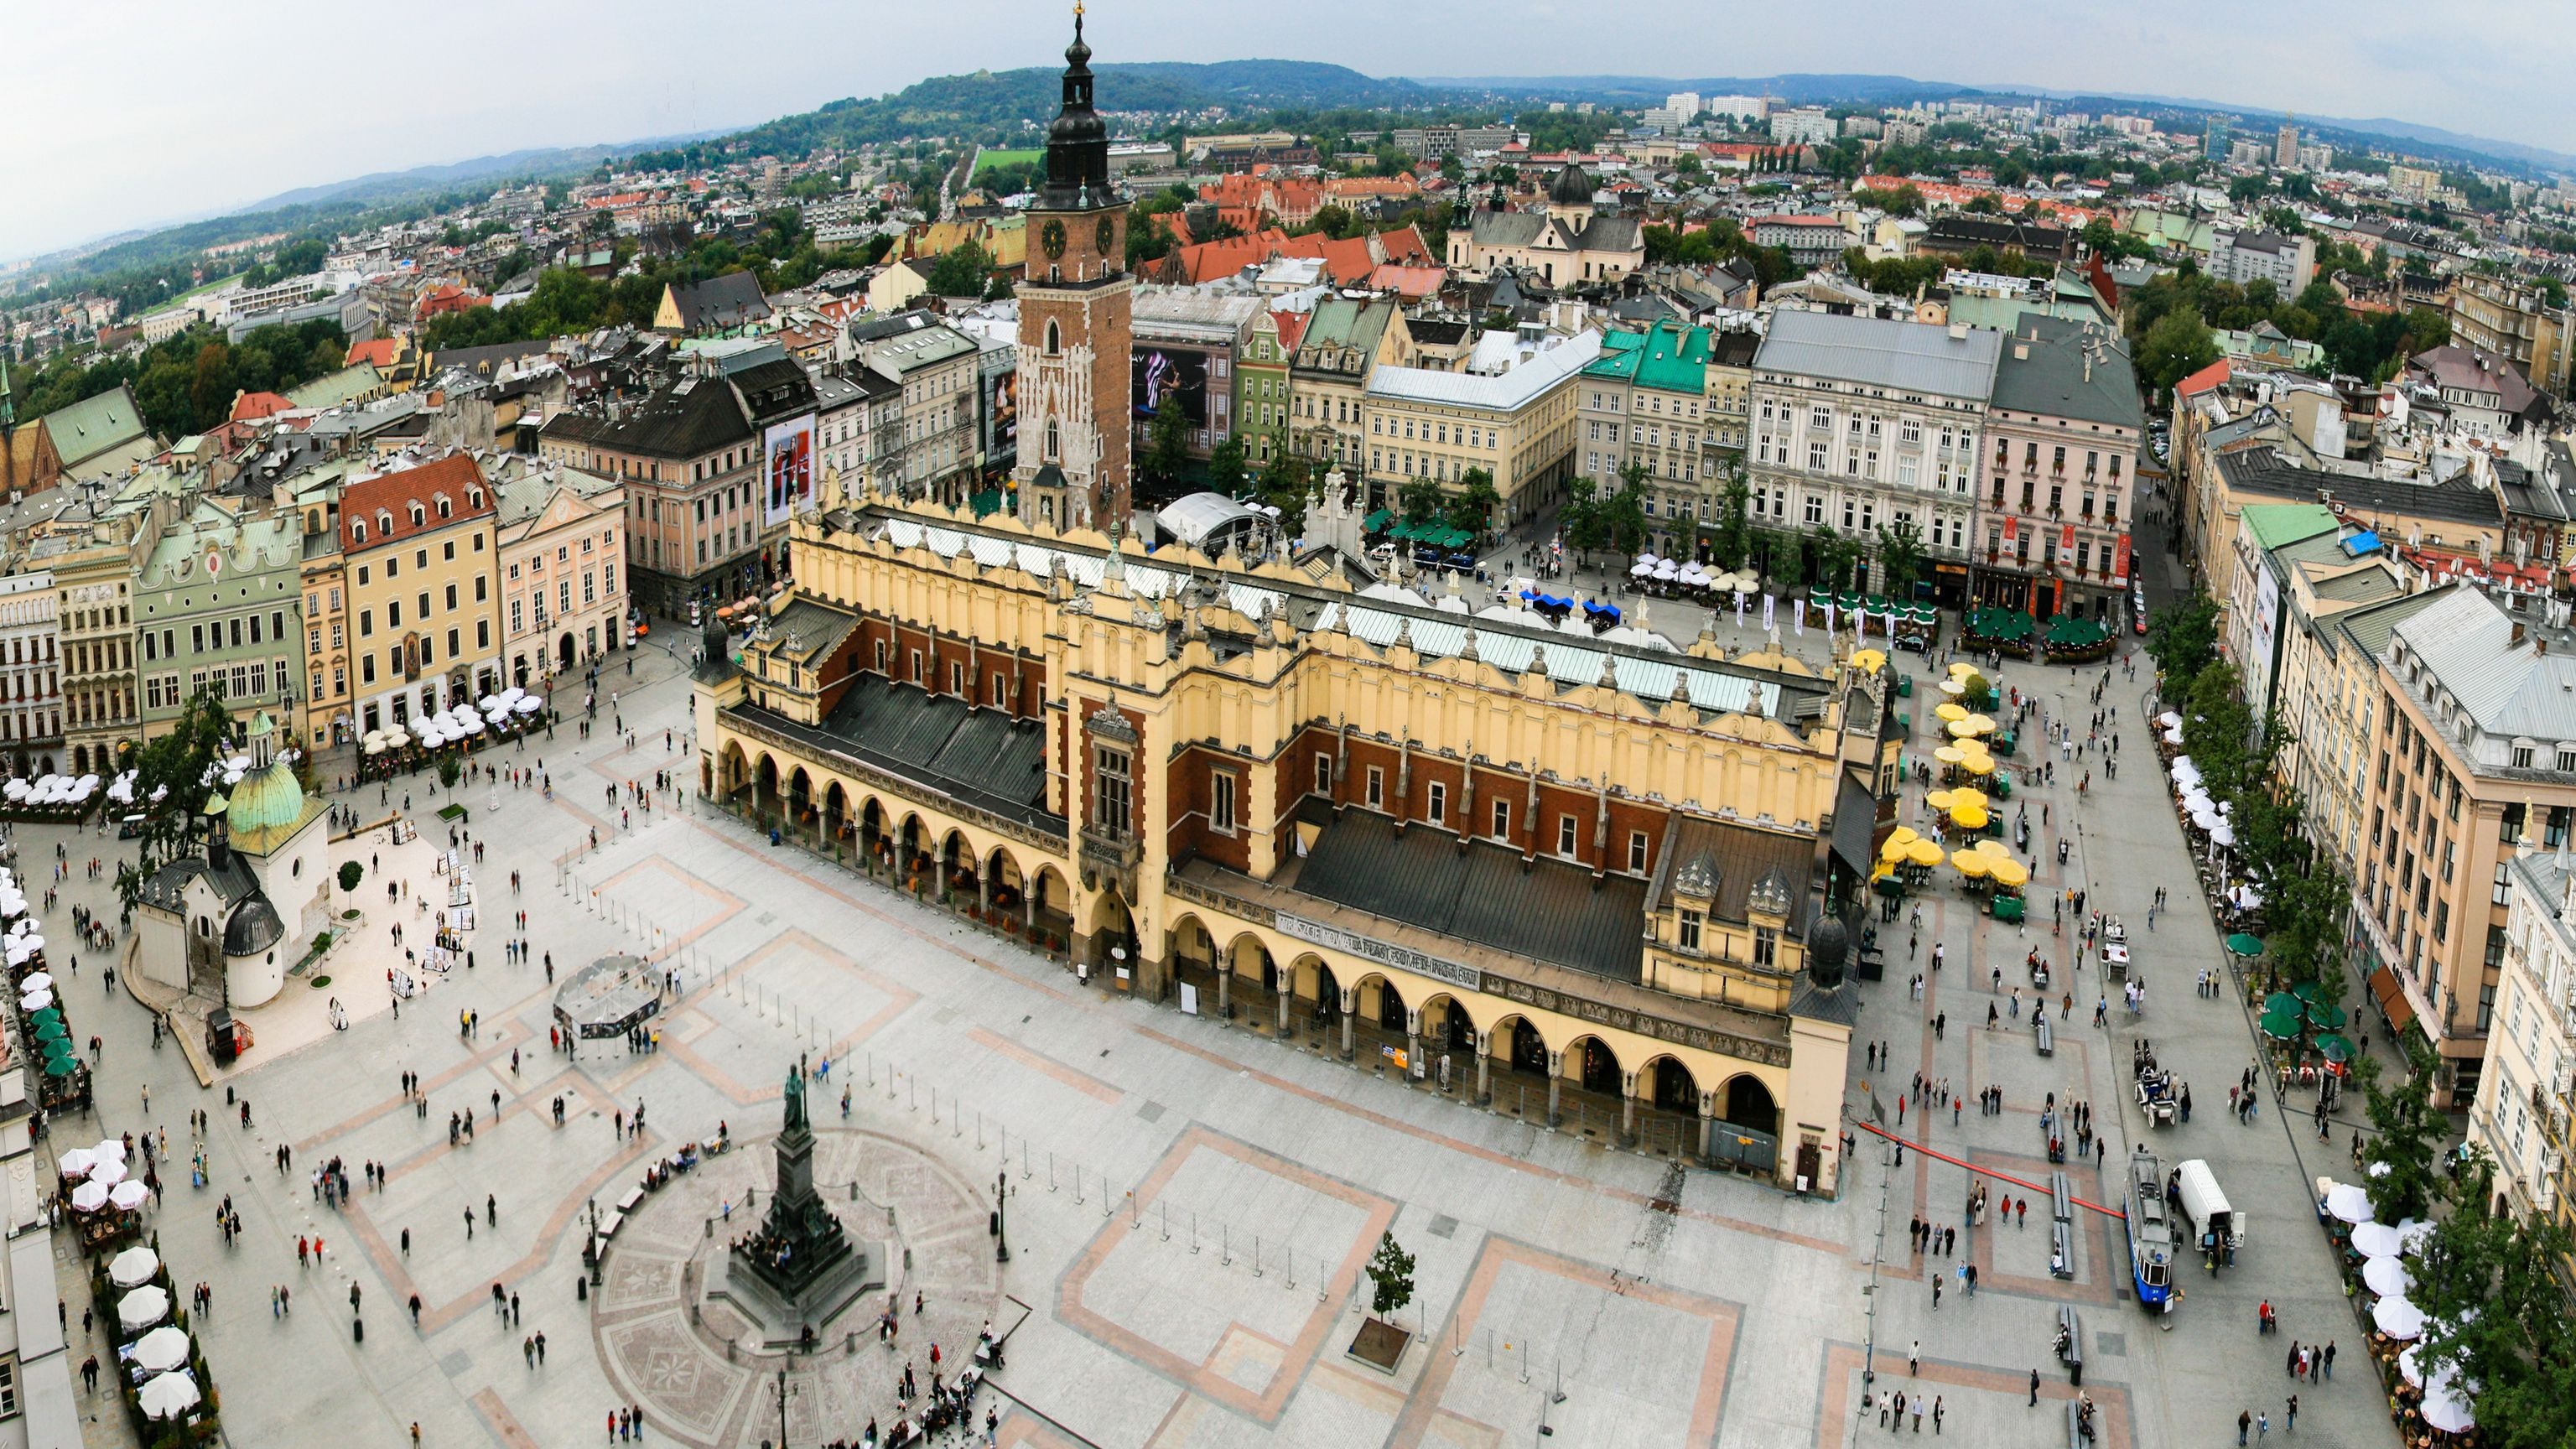 Krakow Wallpapers Images Photos Pictures Backgrounds 3072x1728